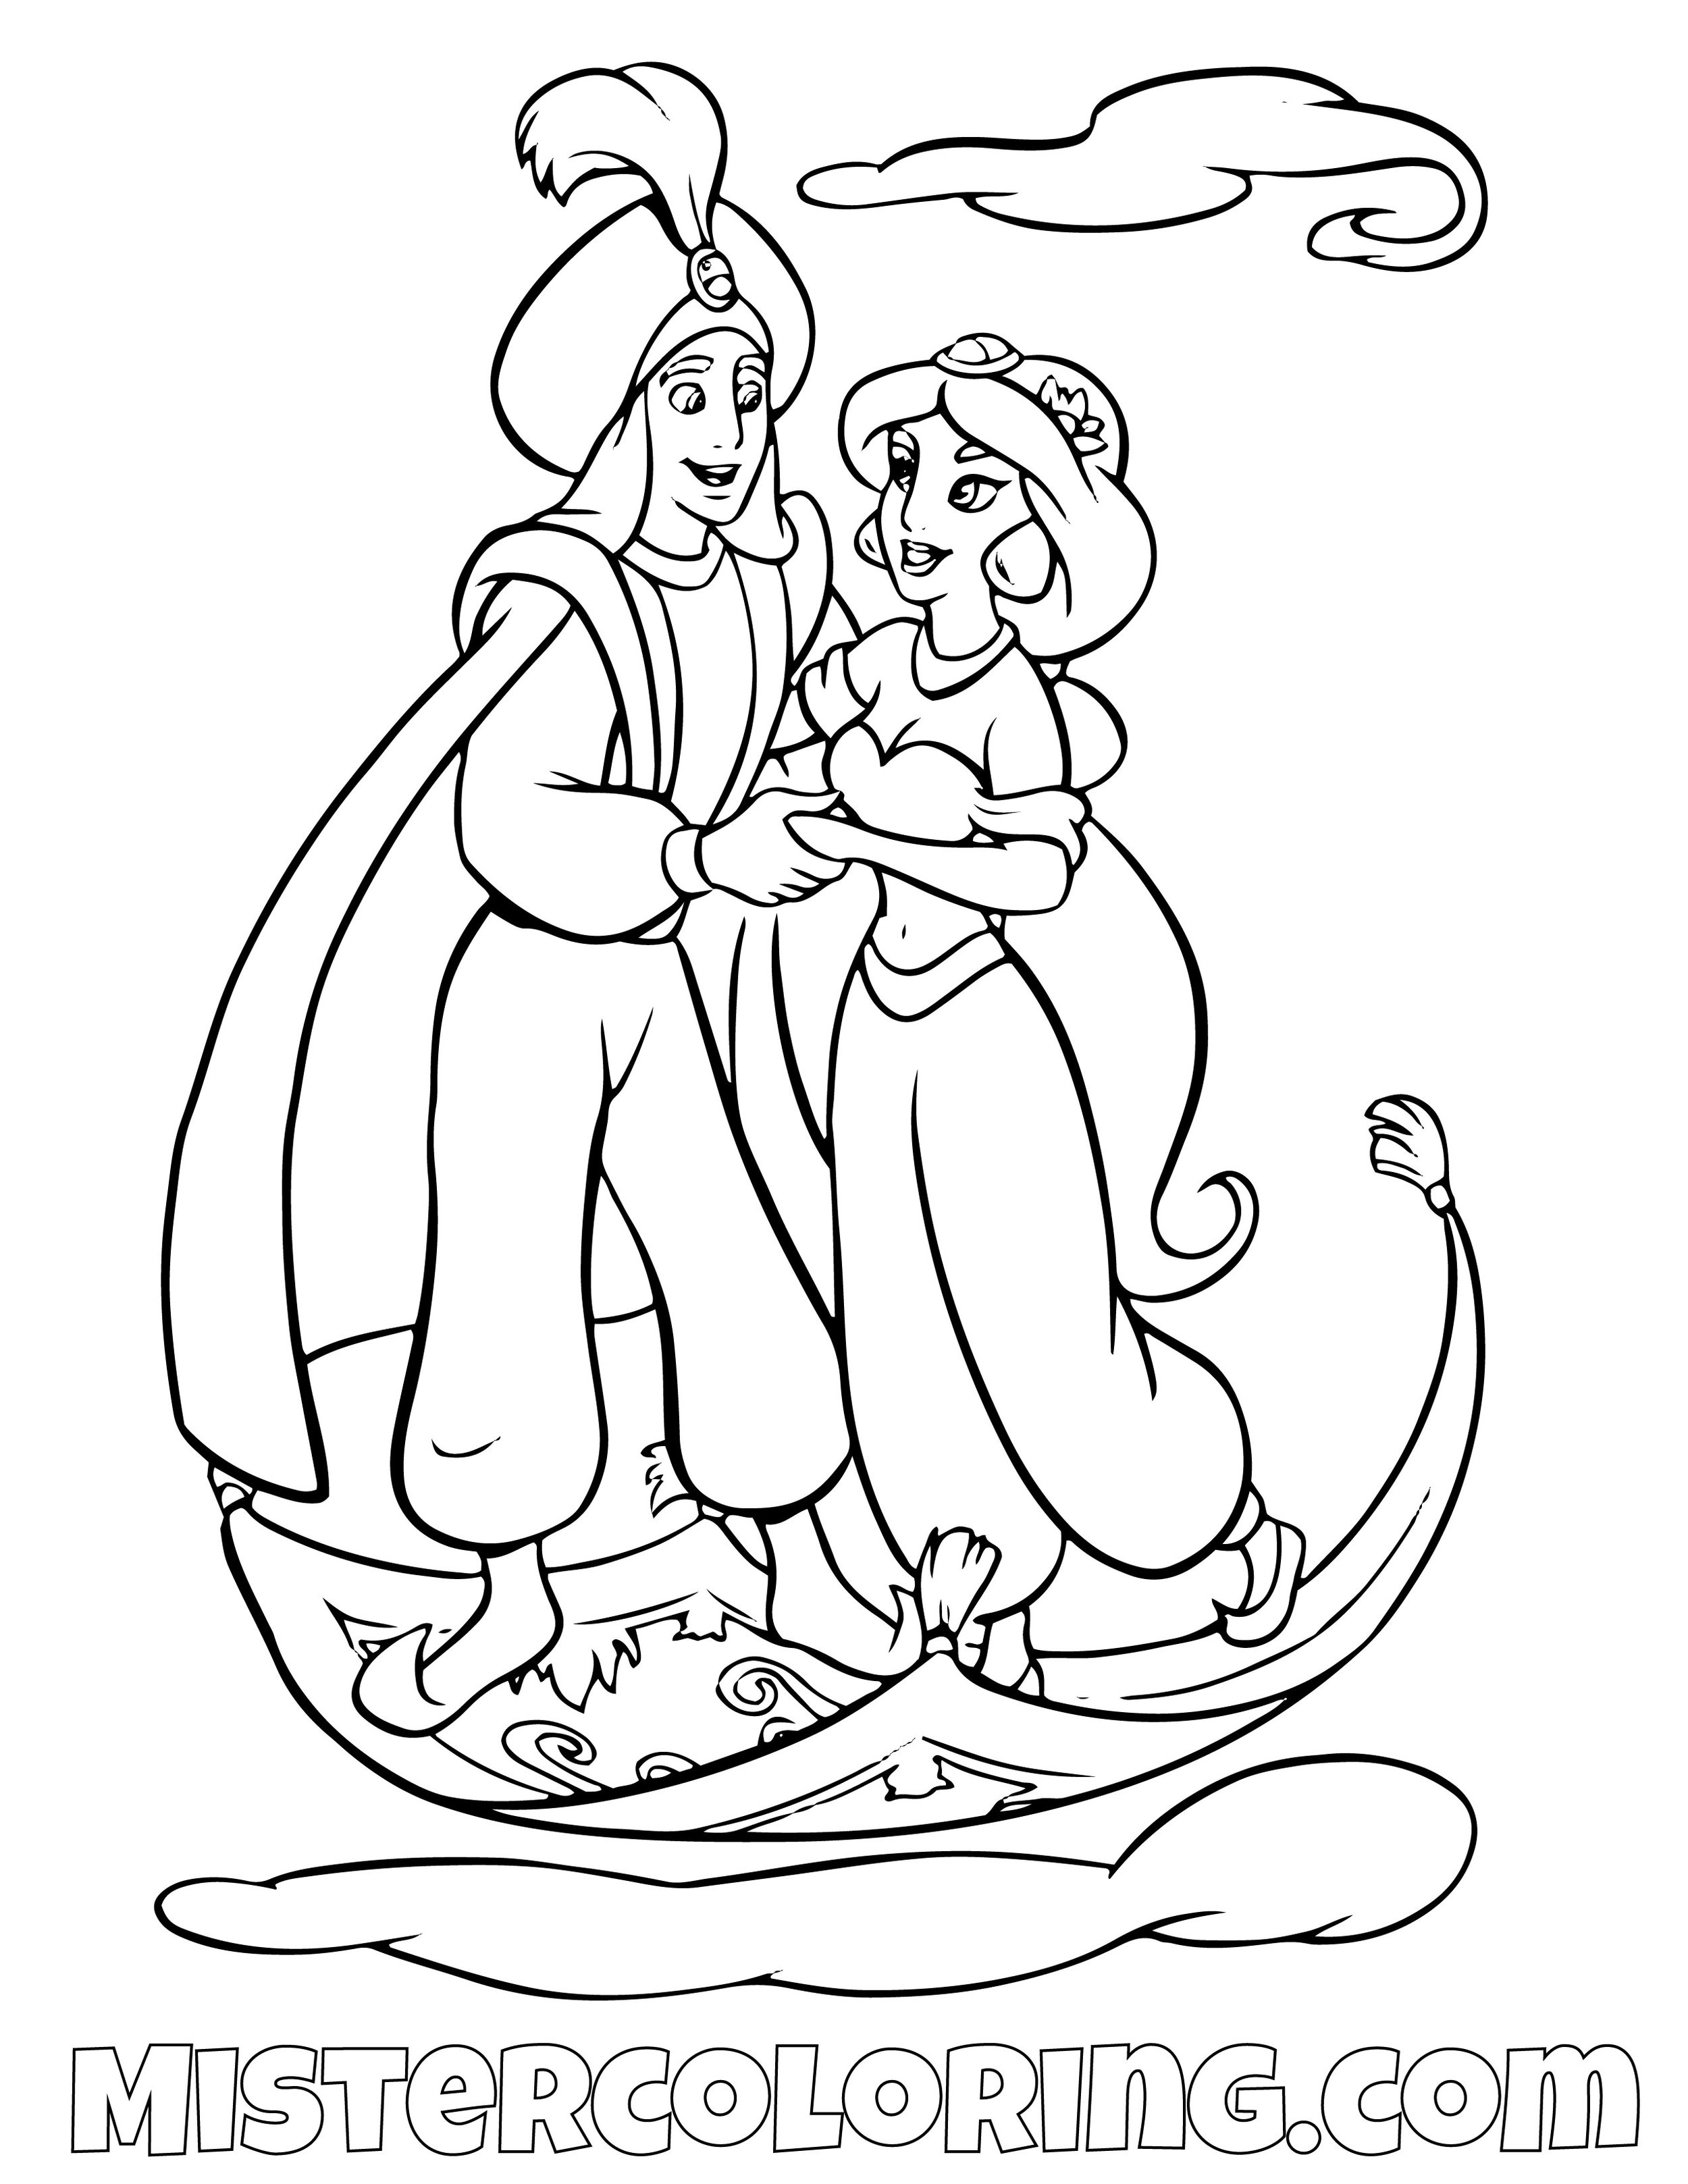 Aladdin And Princess Jasmine Riding Carpet Aladdin Coloring Page